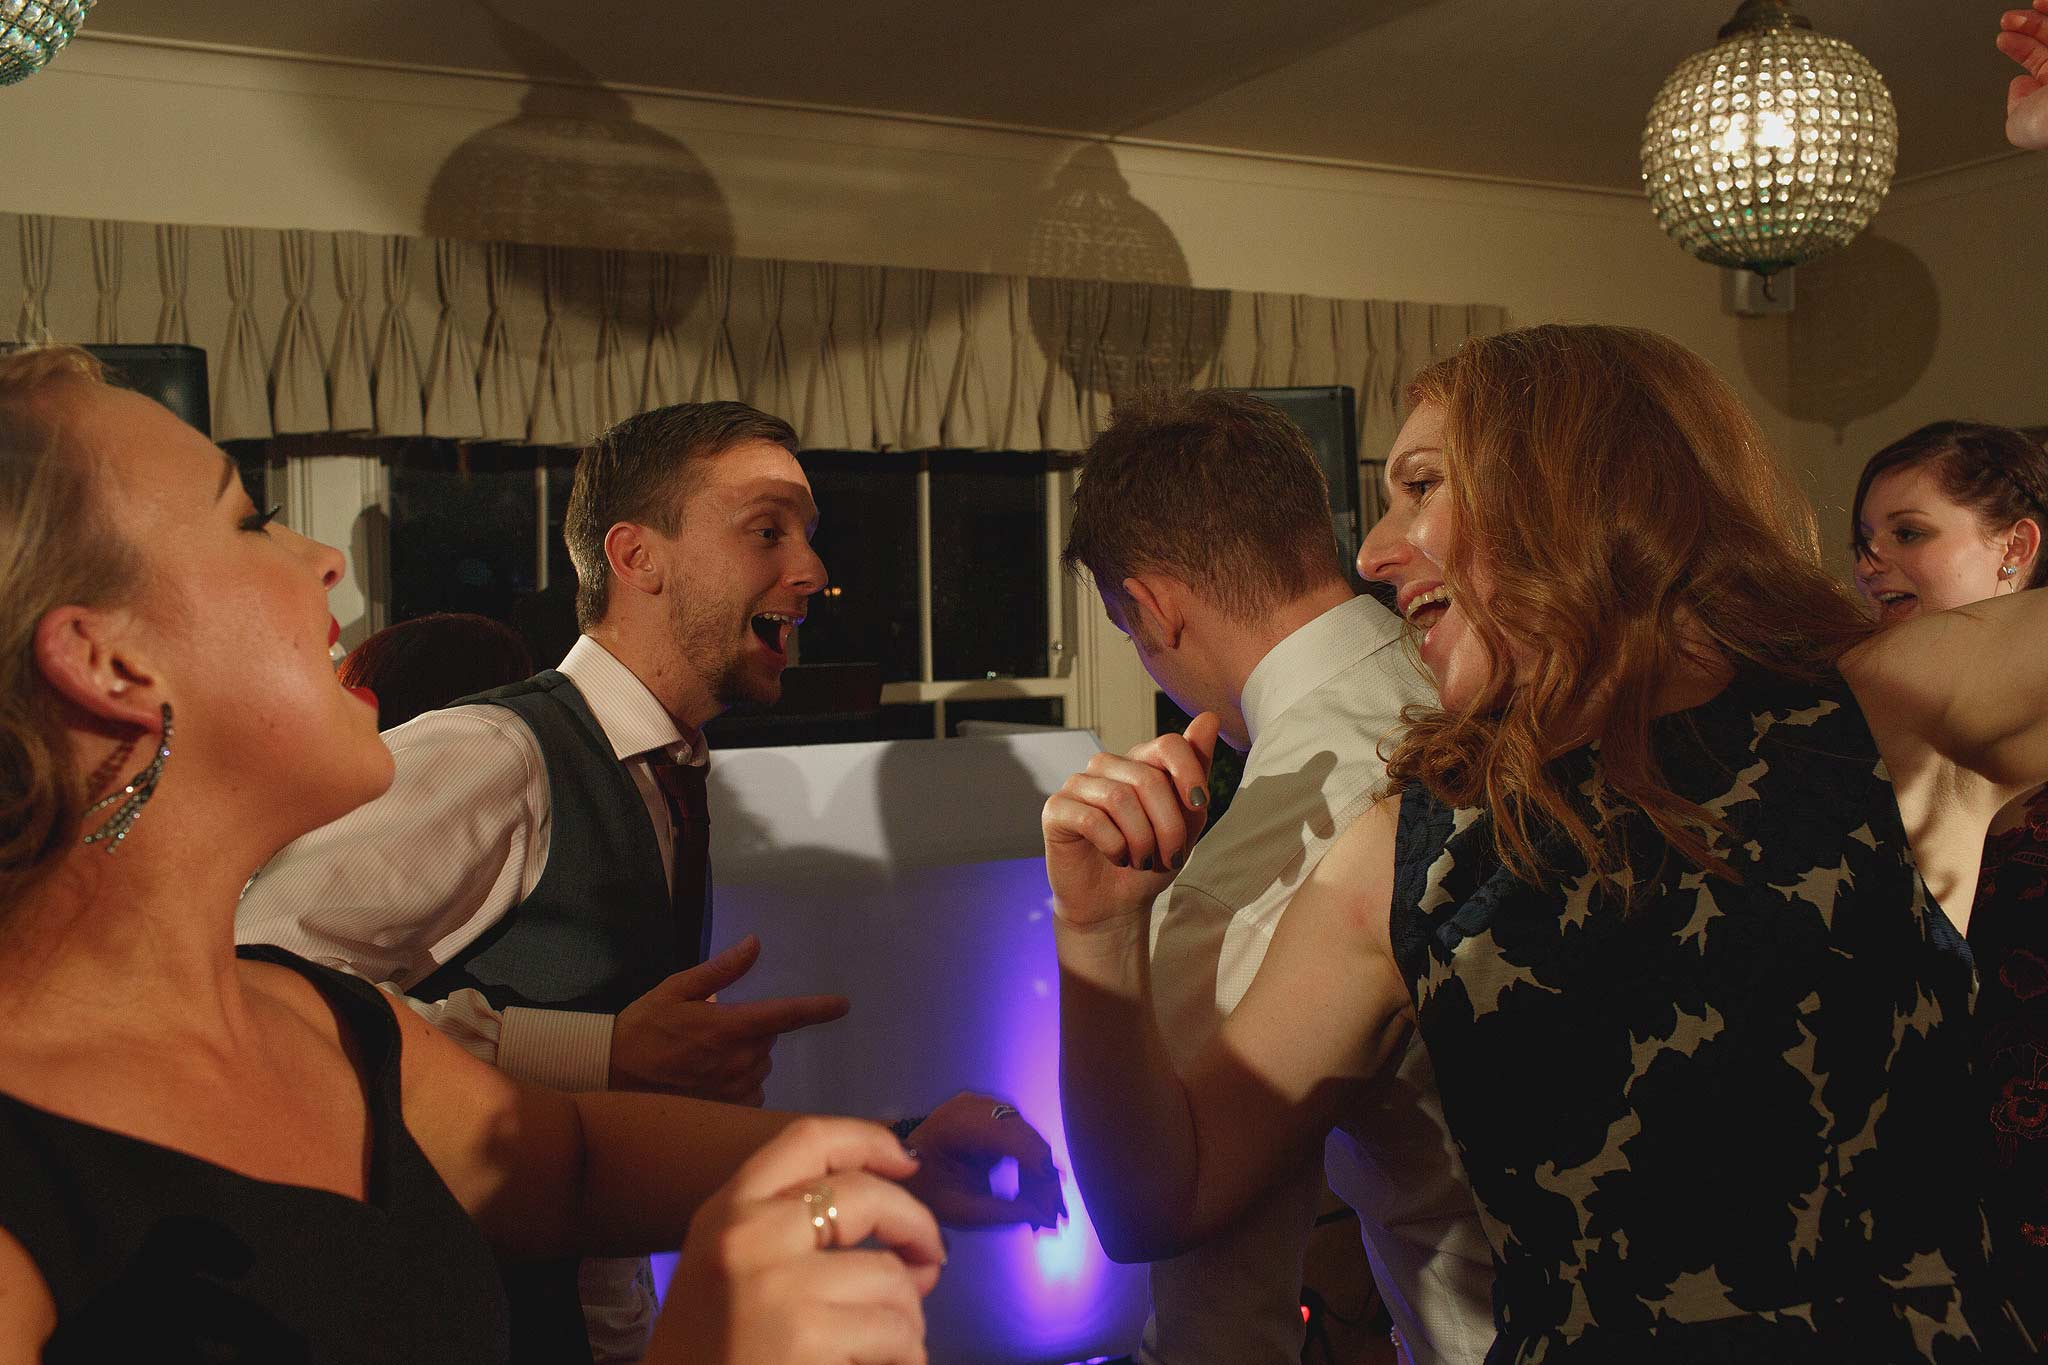 Guests dancing during the wedding reception at the shireburn arms